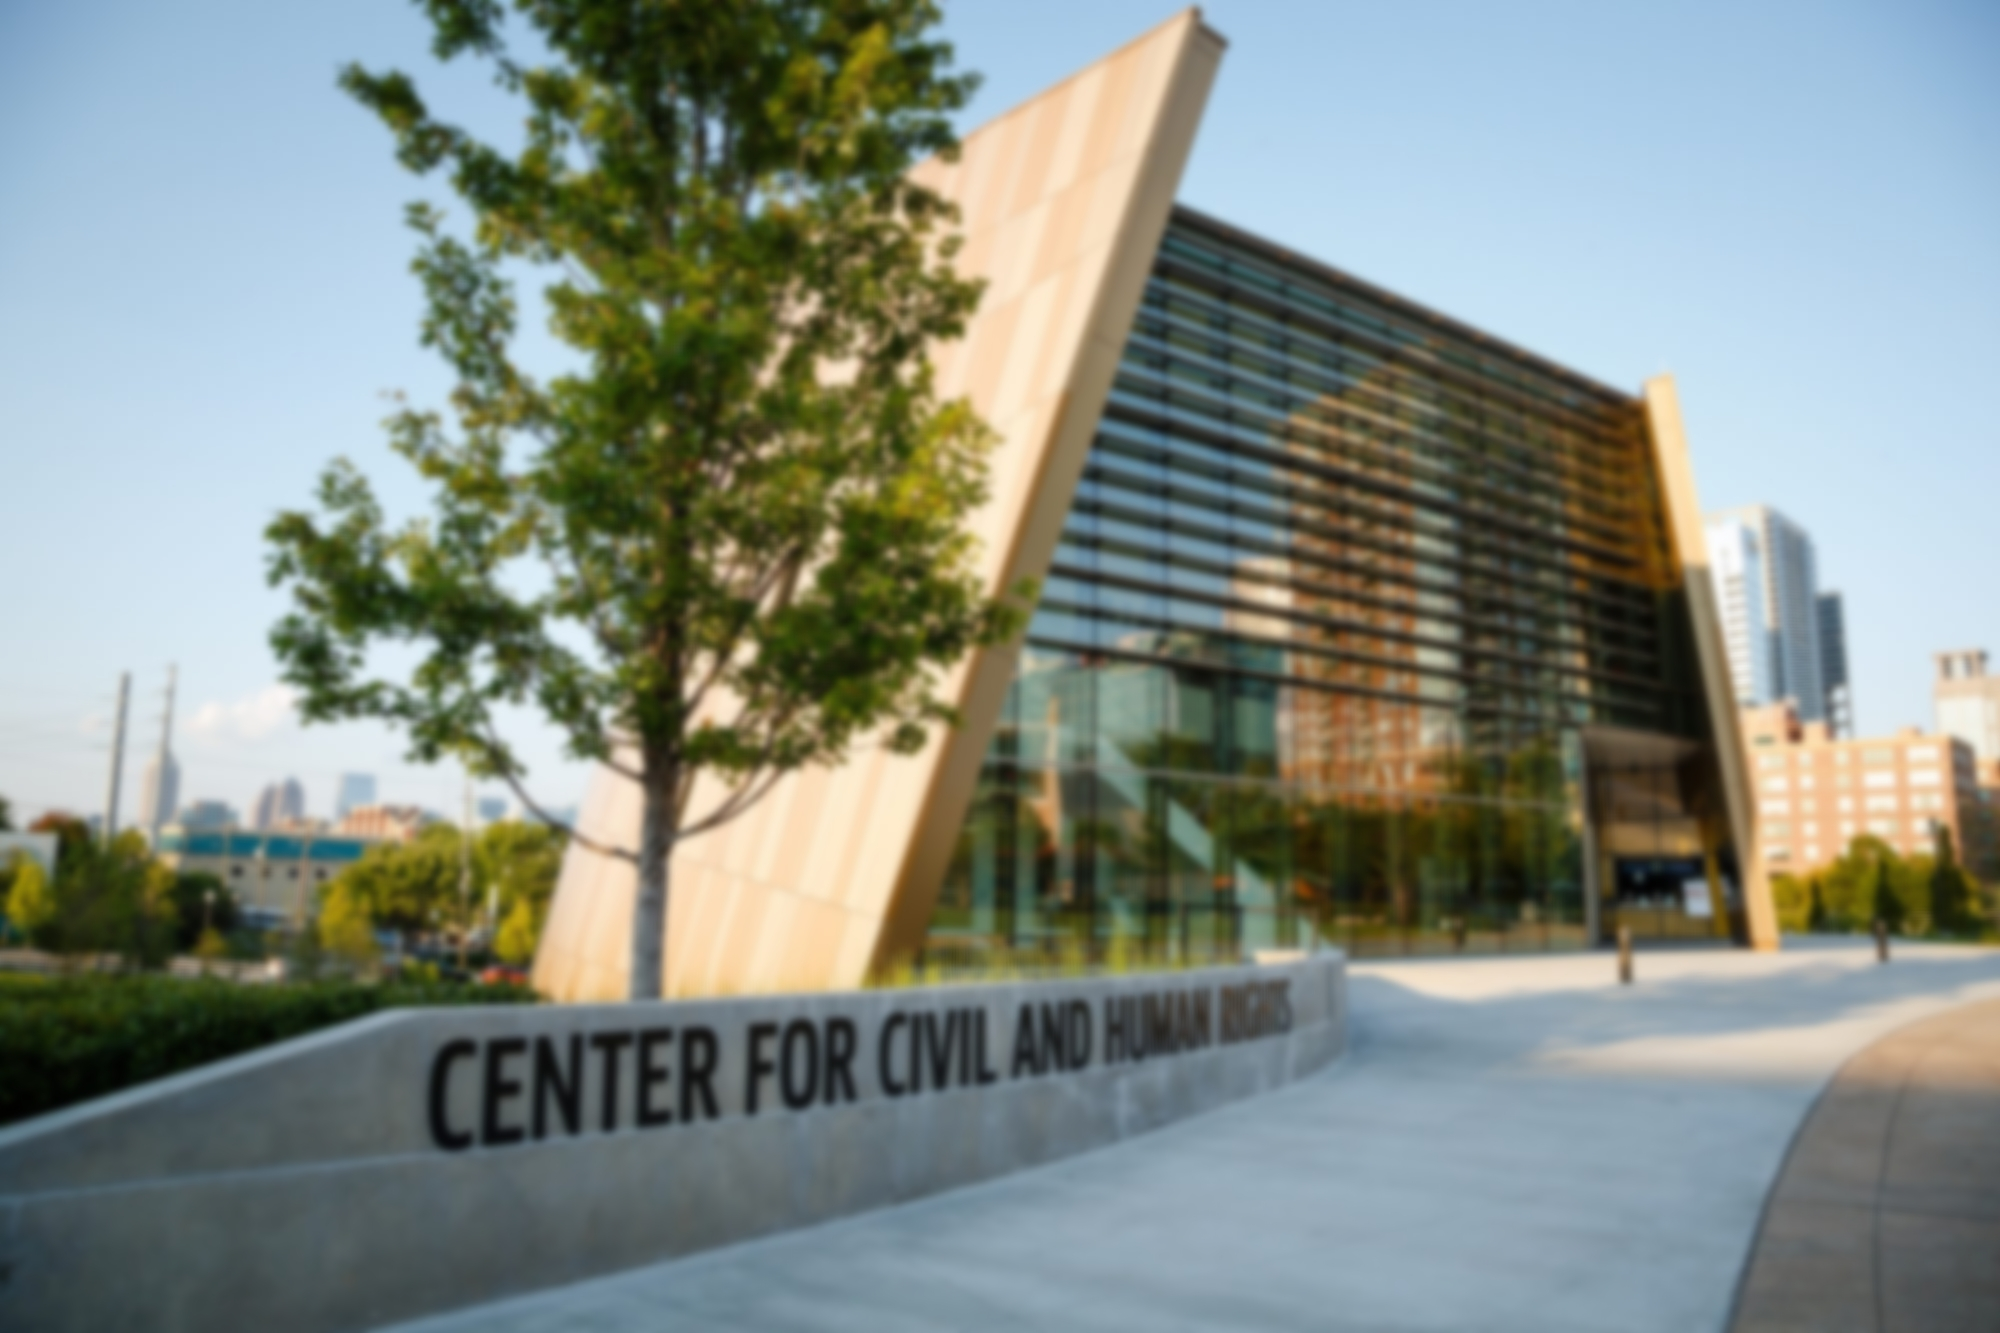 Center for Civil and Human Rights -